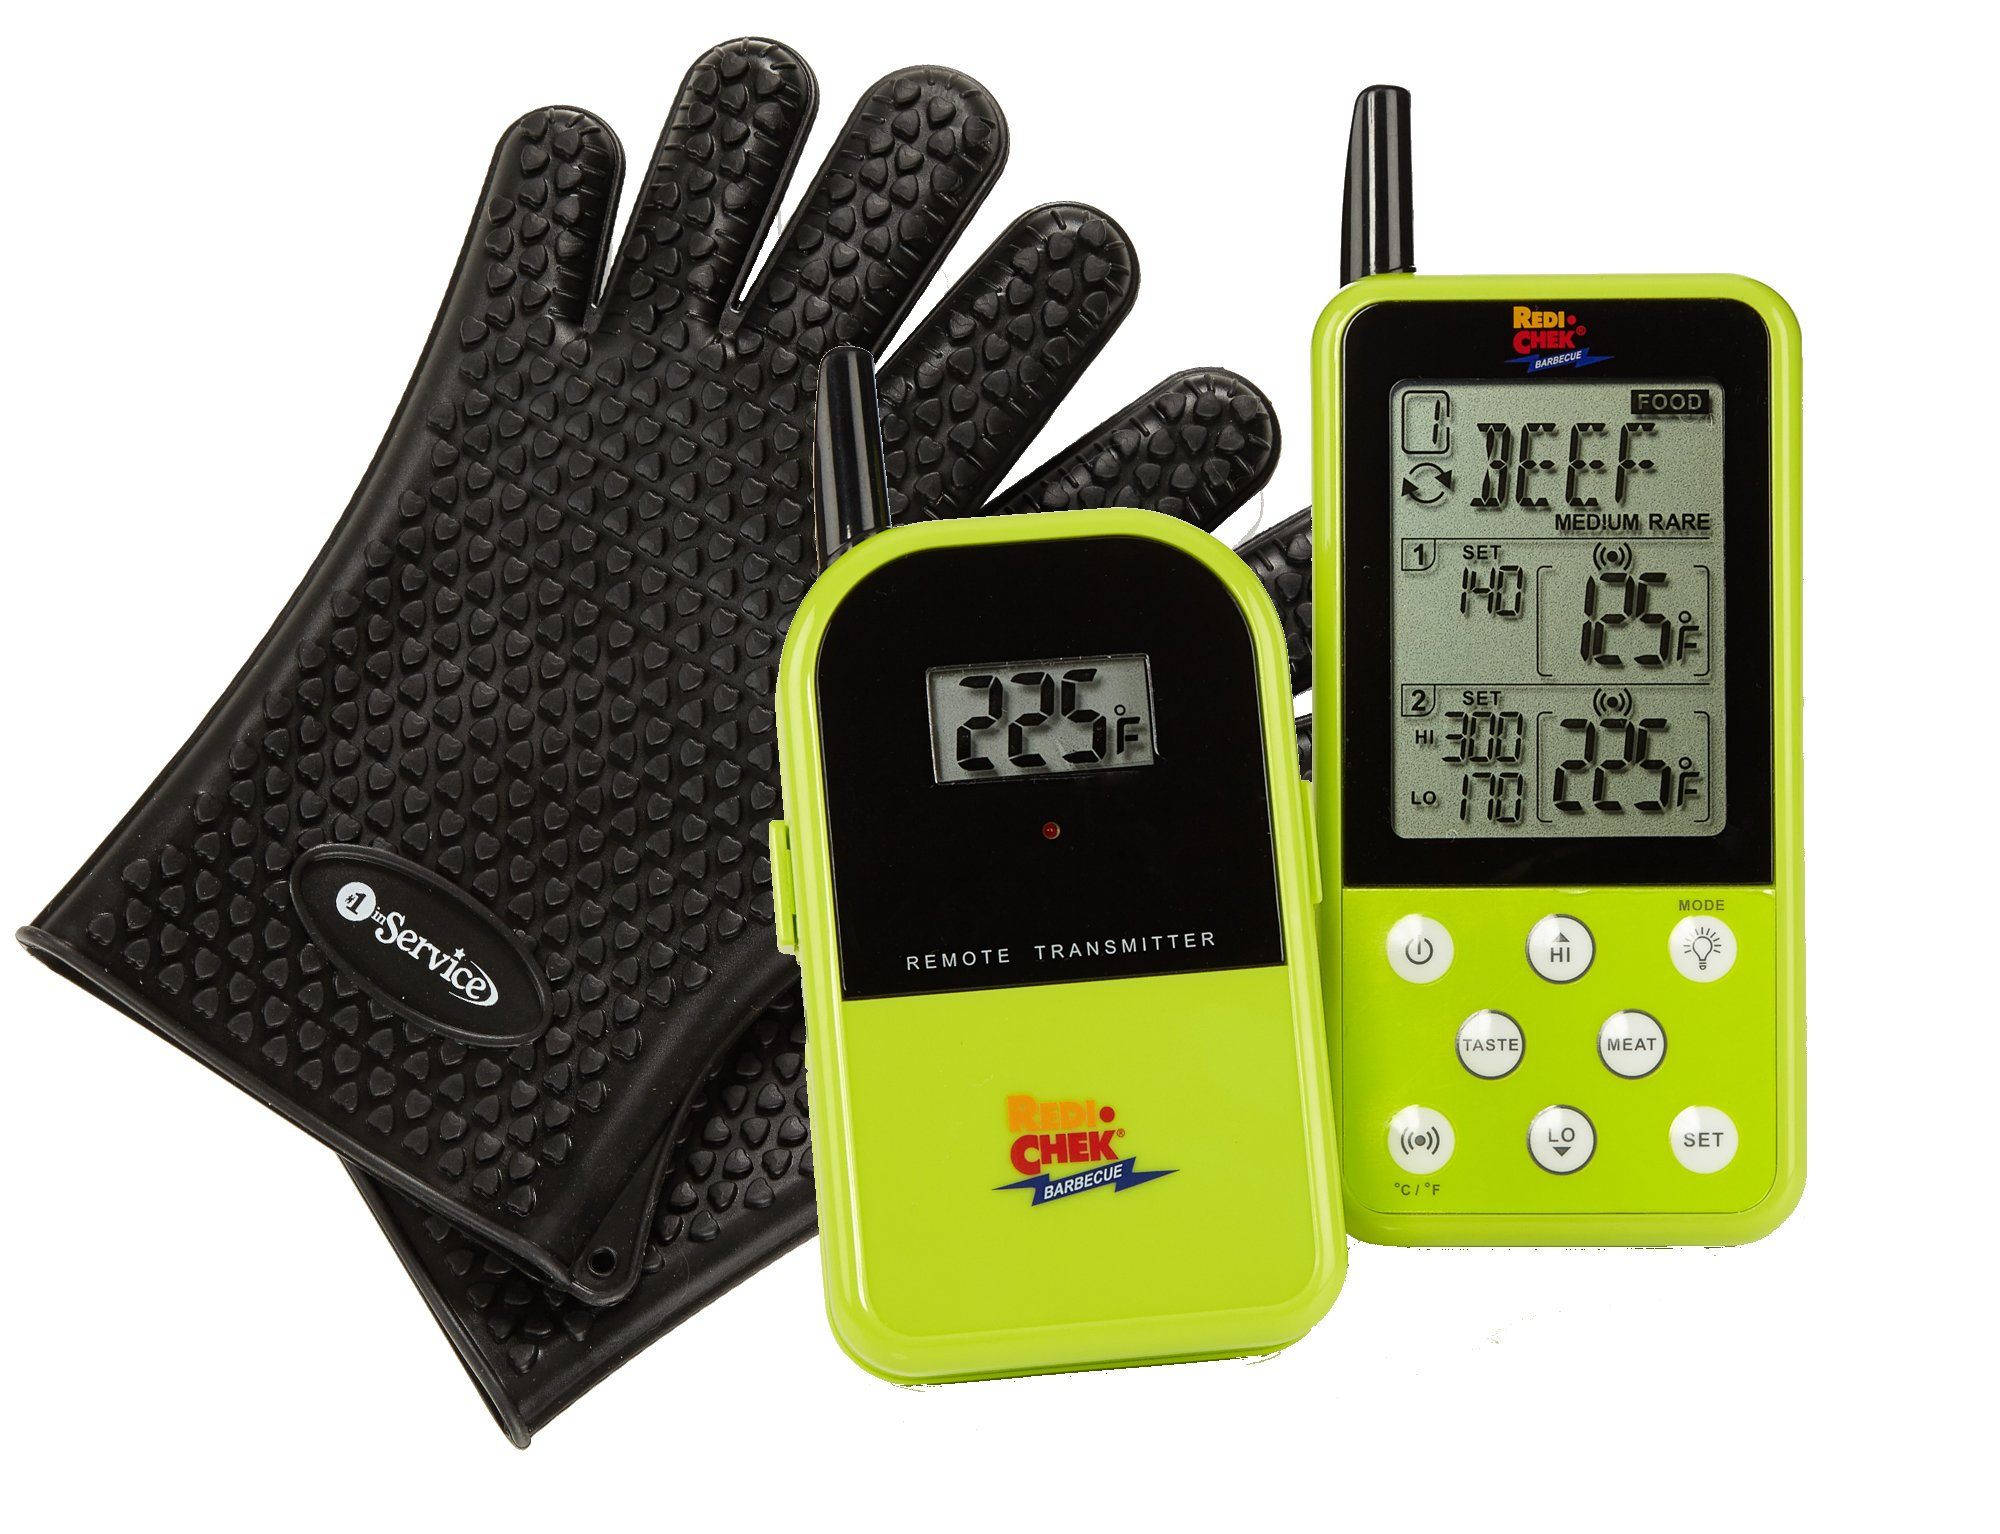 Long Range Wireless Dual Probe Barbecue Smoker Meat Thermometer Set - Newest Version with a Larger Display and Added Features – Monitors your grill up to 300 feet (Et-733) – Green and a Bonus pair of top quality Heat Resistant Silicone Gloves in Black